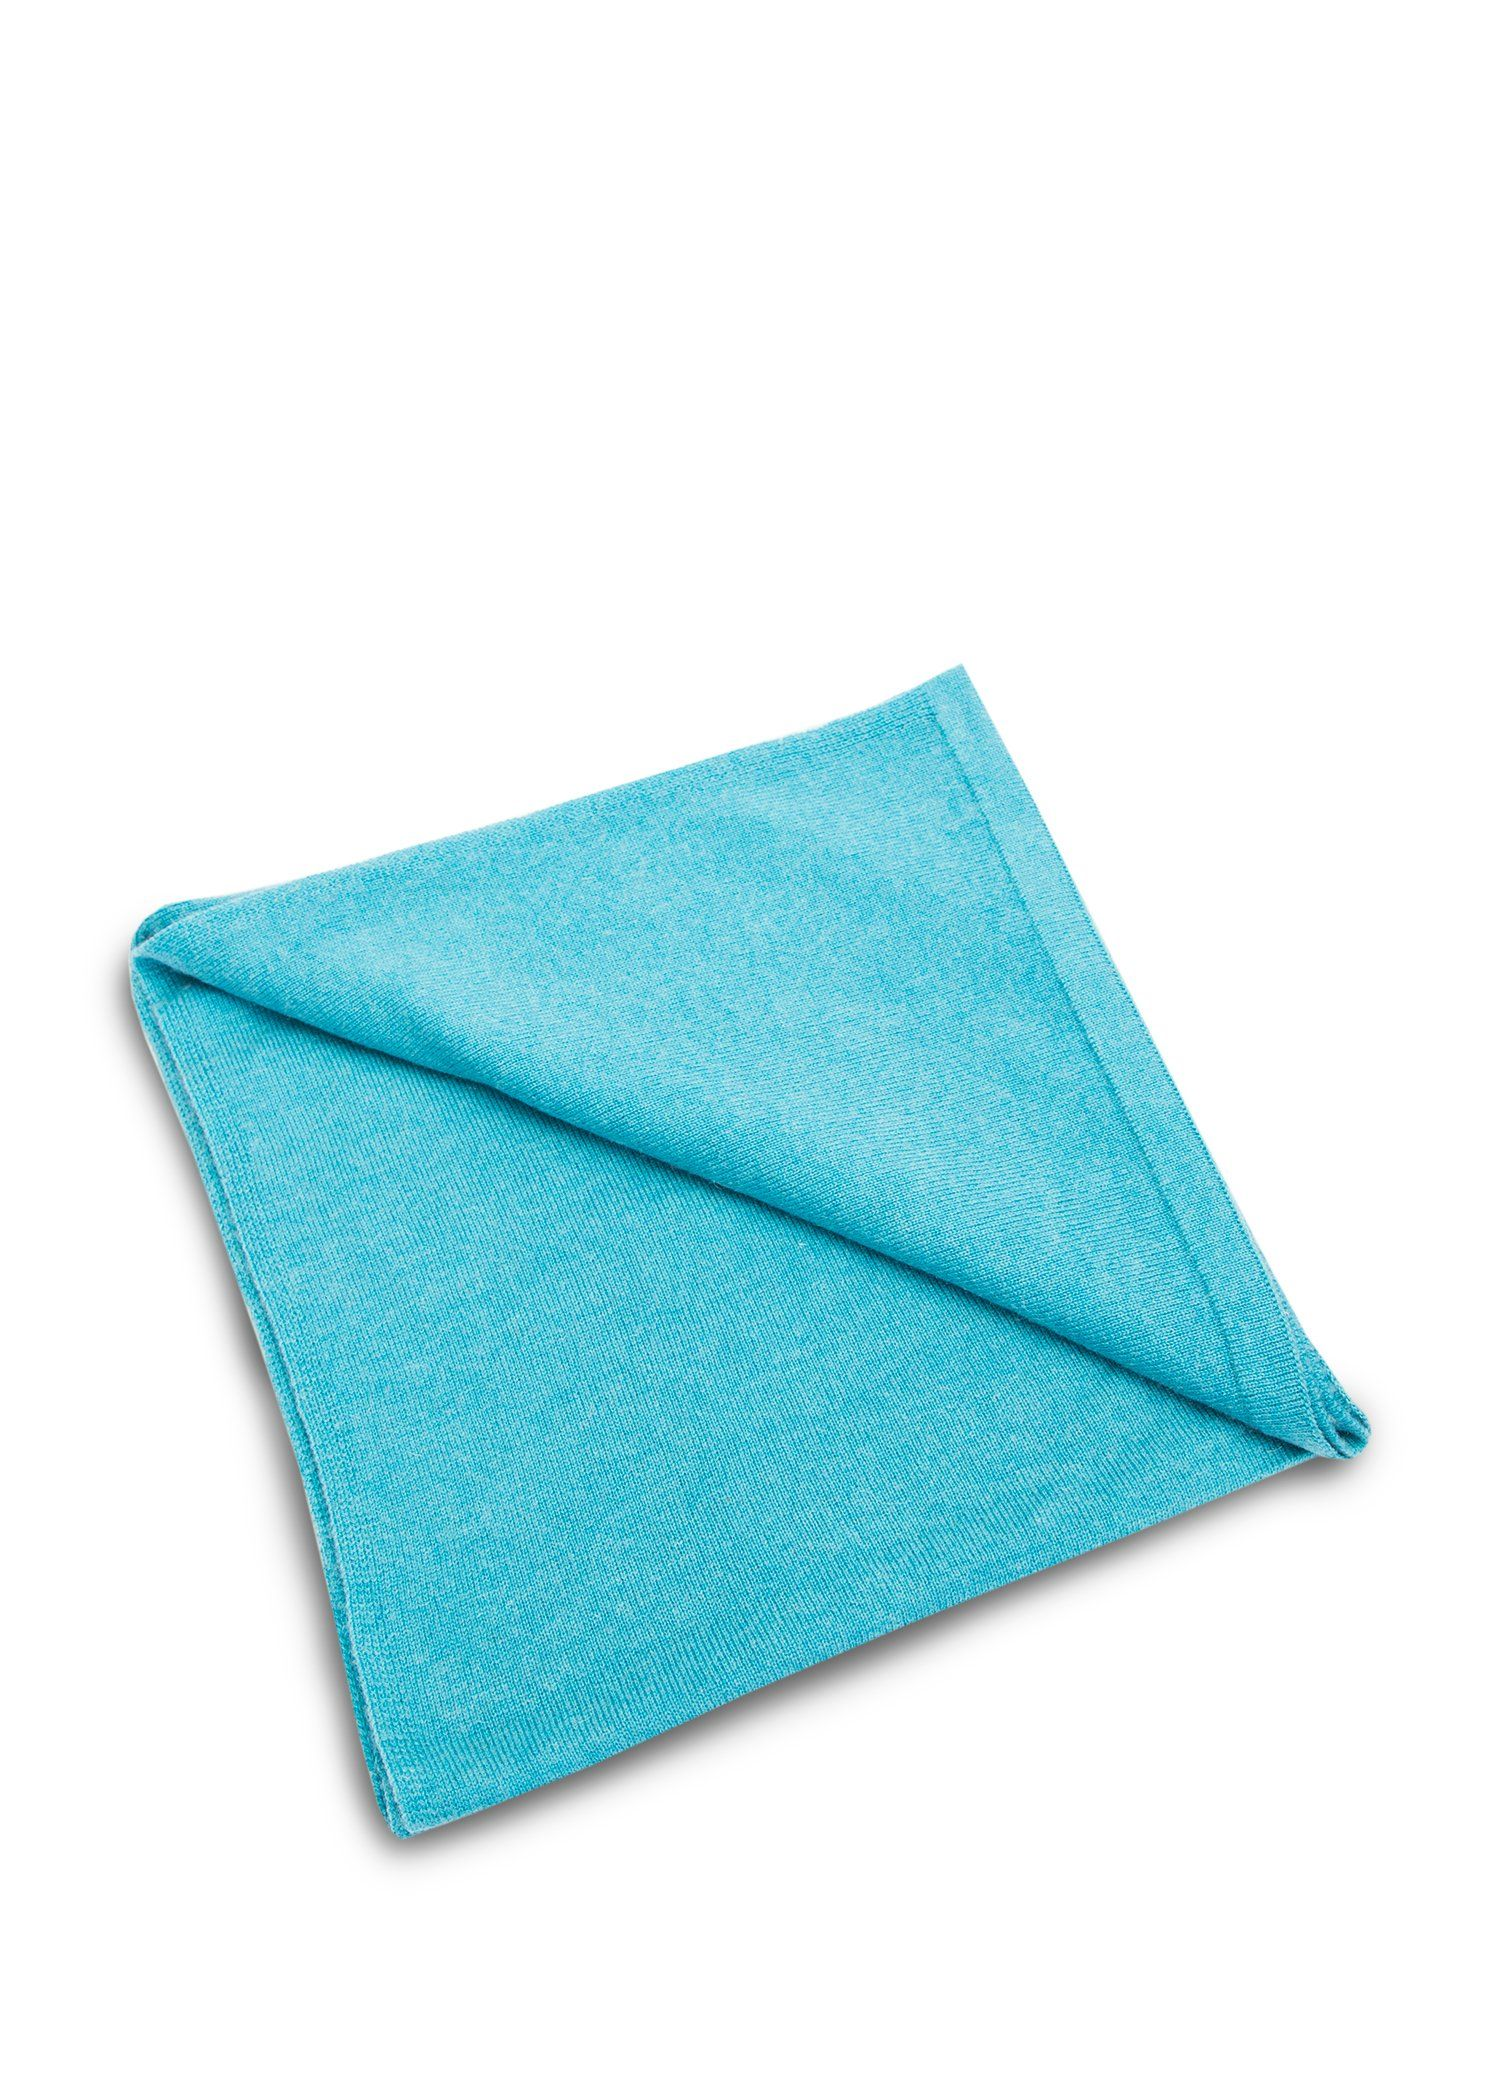 Turquoise Wool Cashmere